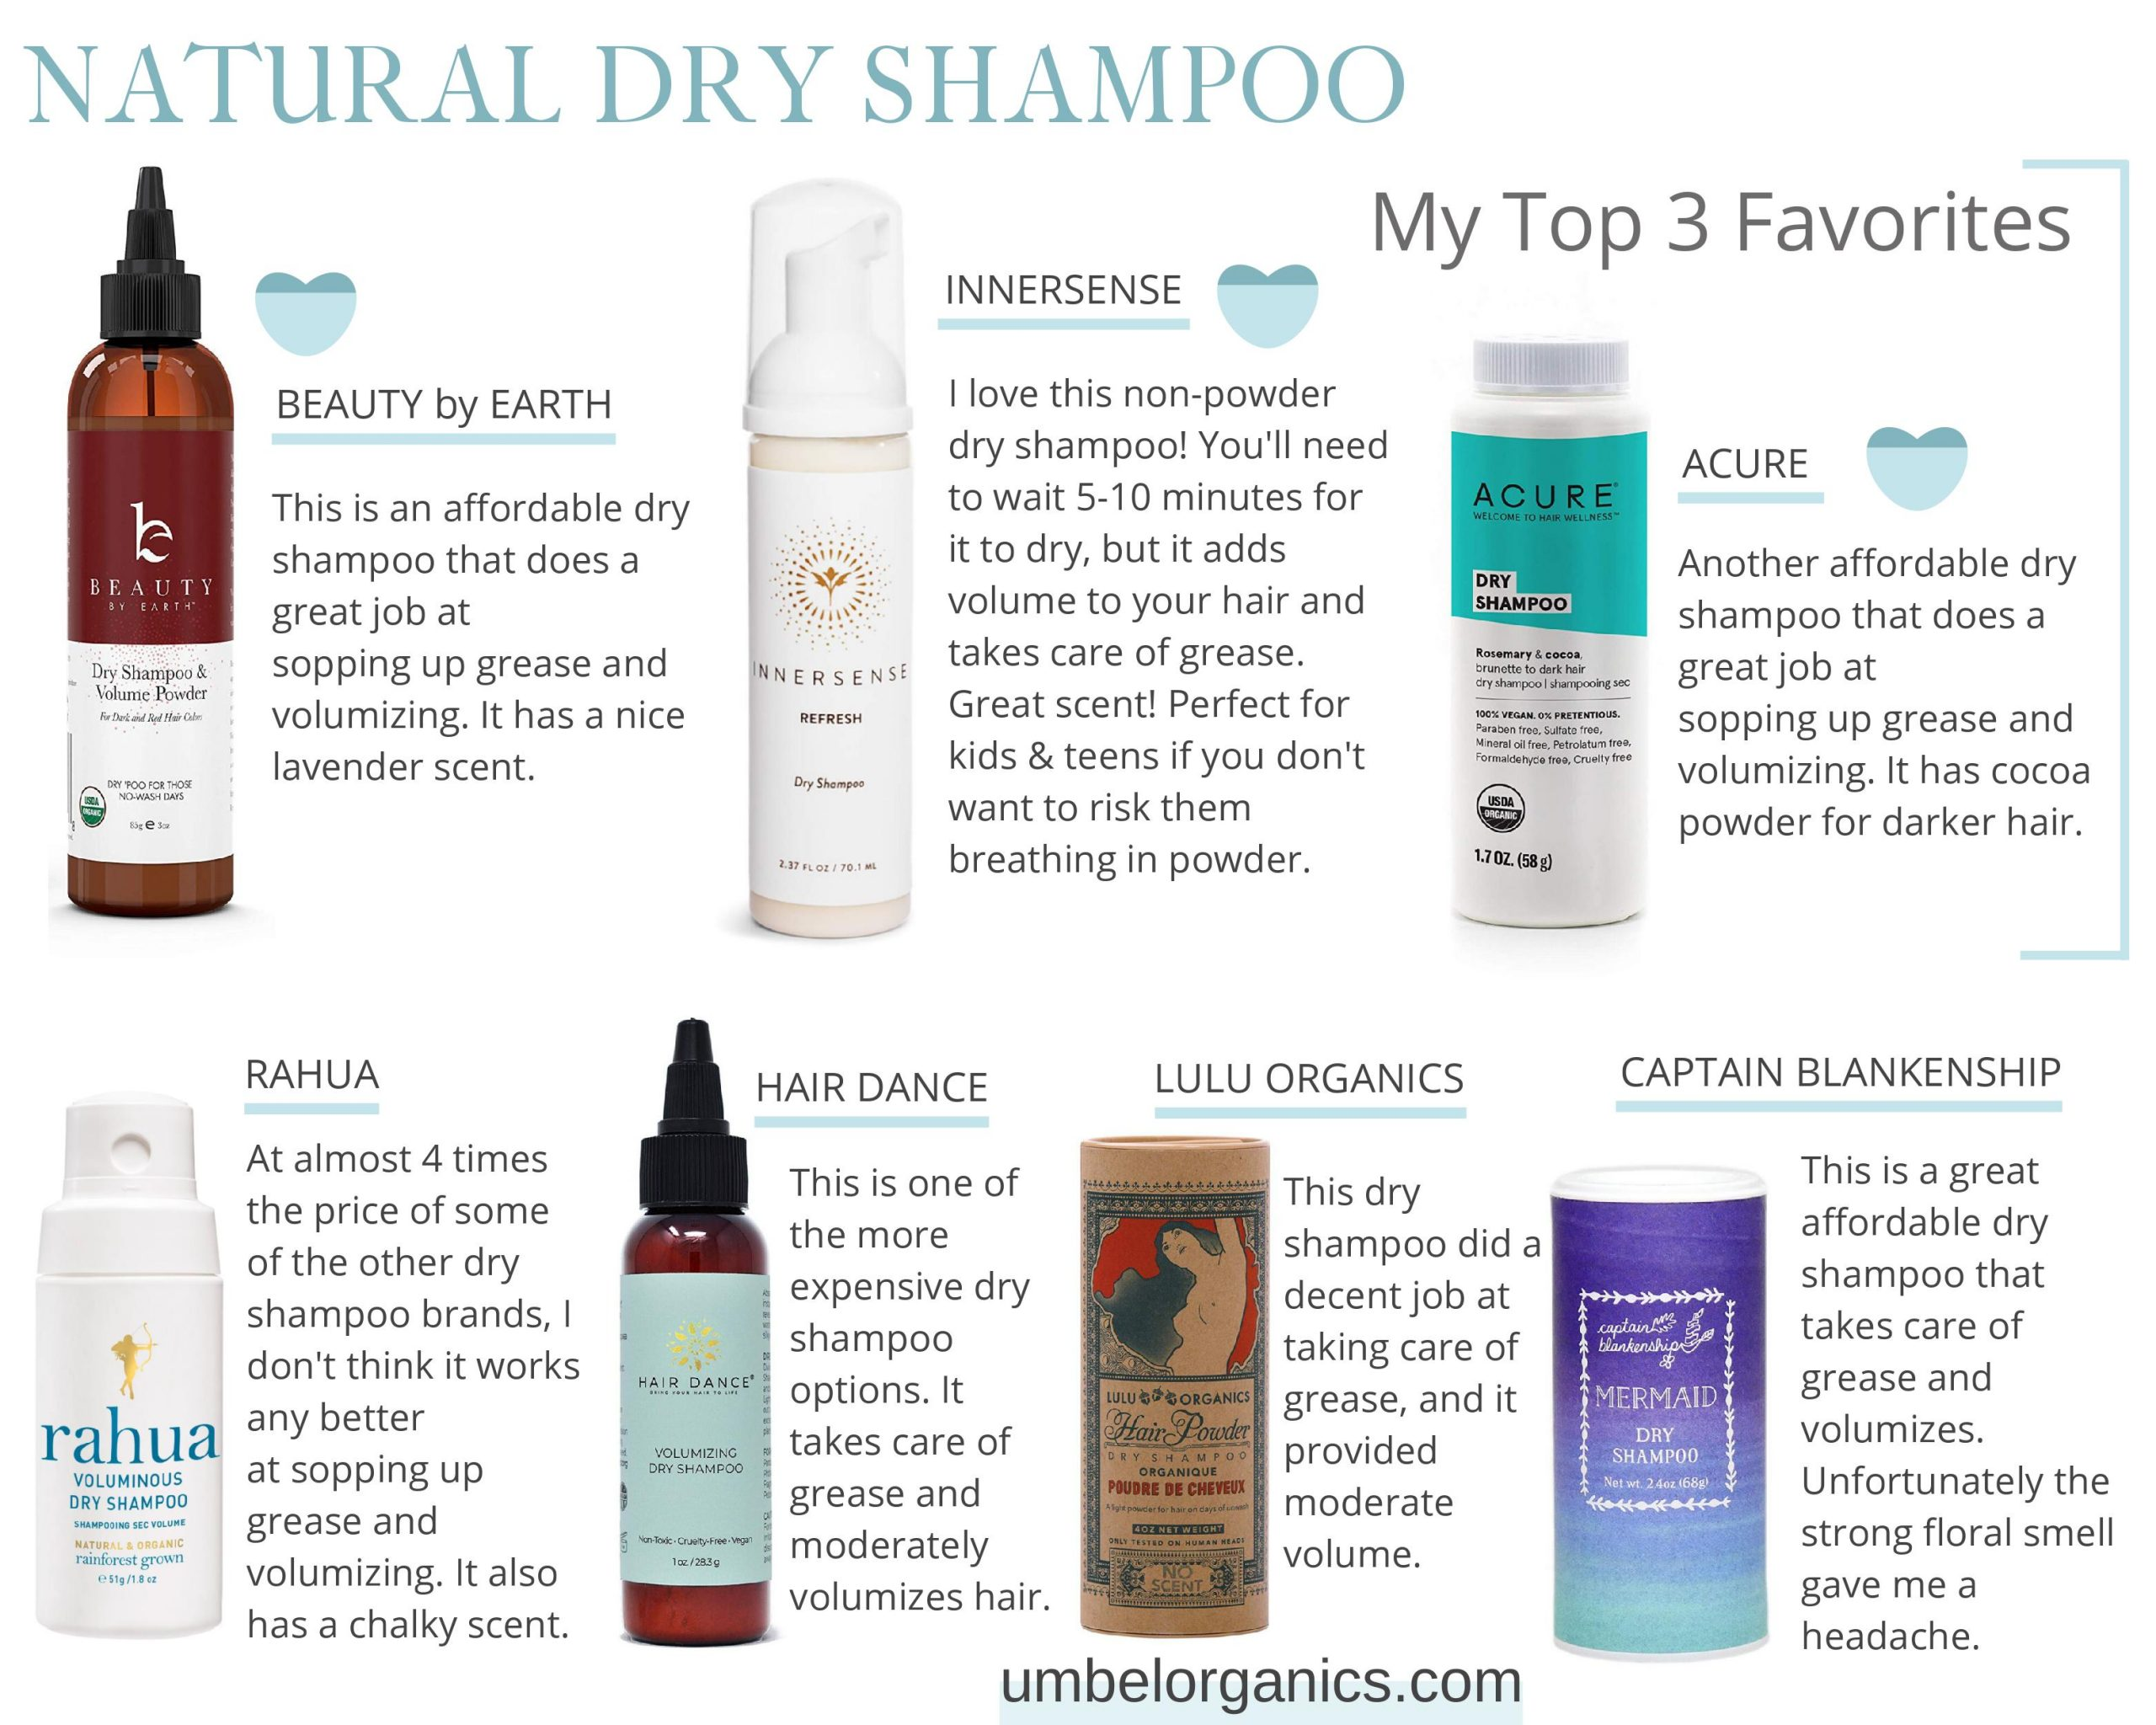 My favorite natural dry shampoo brands out of 7 tested